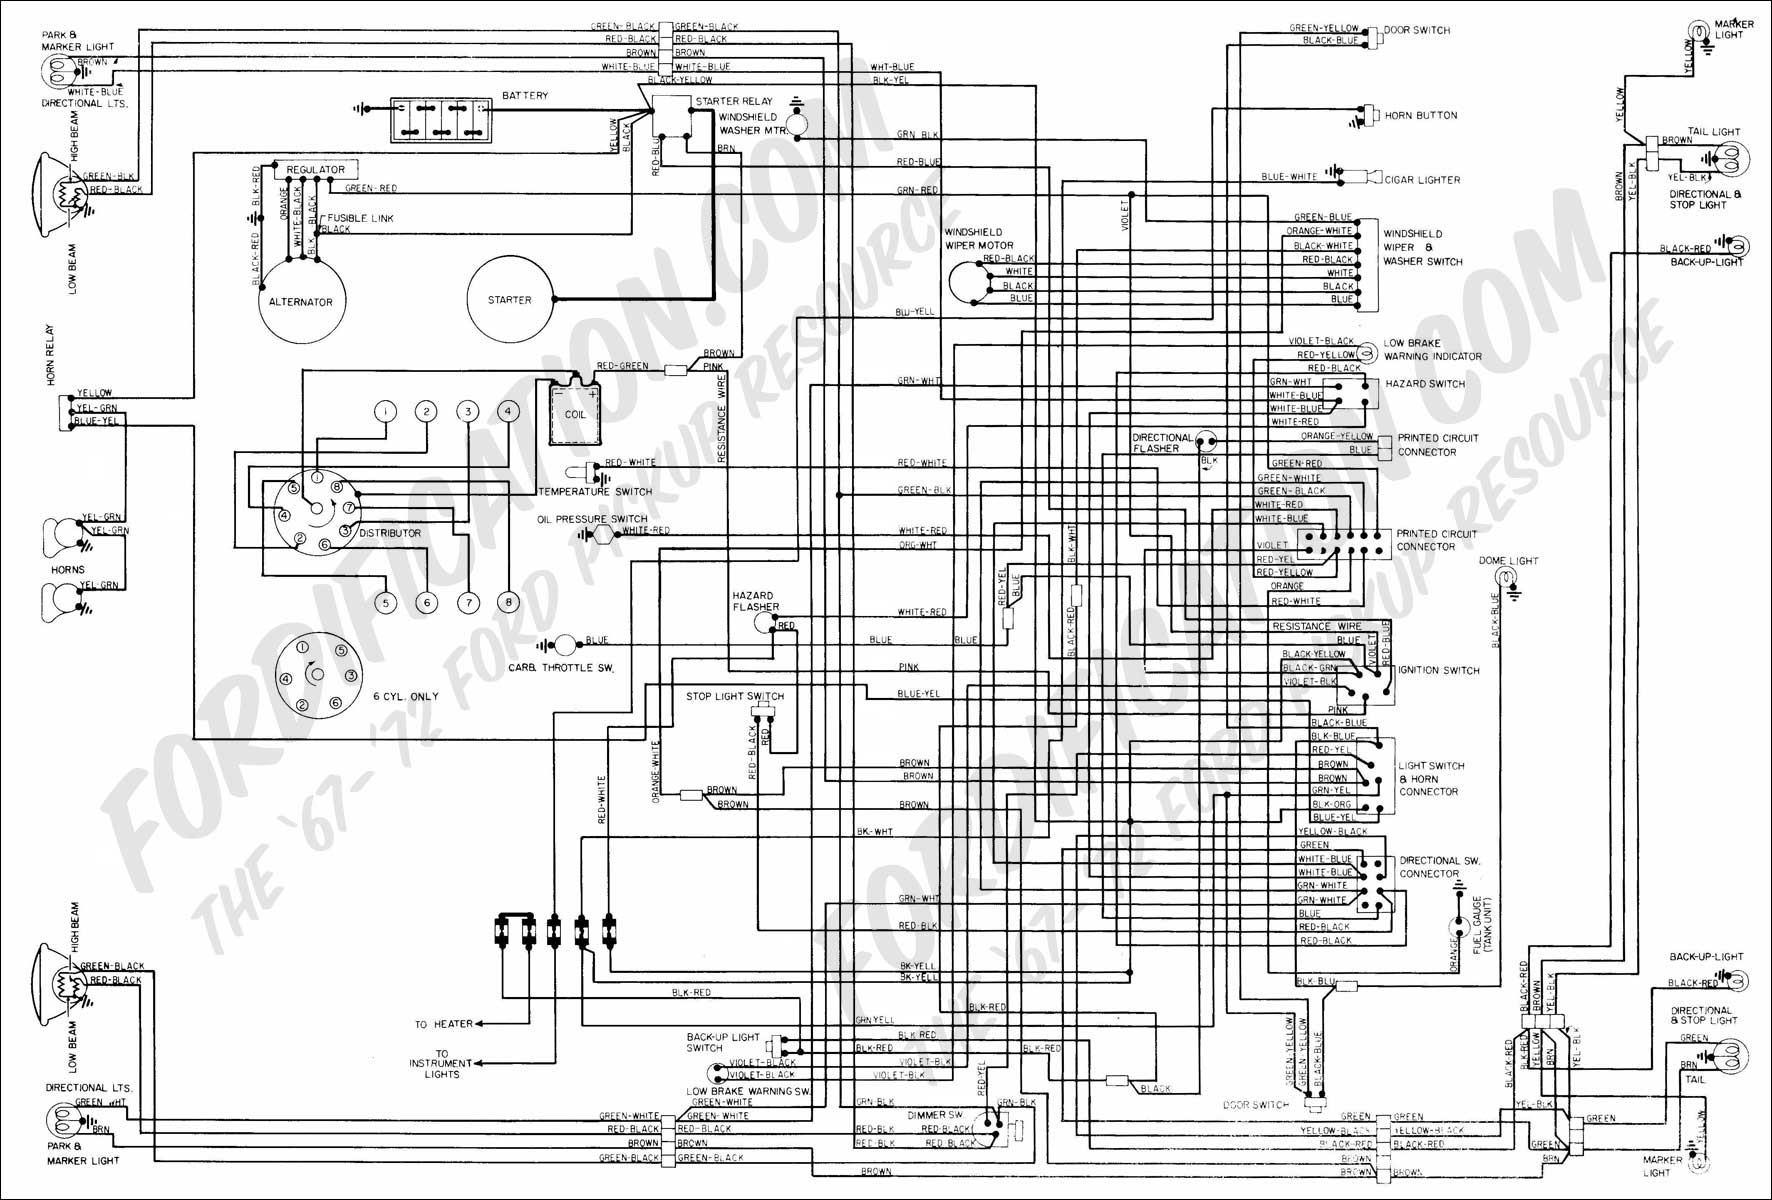 wiring diagram 72_quick 2002 ford f250 wiring diagram efcaviation com 2002 ford f250 wiring diagram at reclaimingppi.co